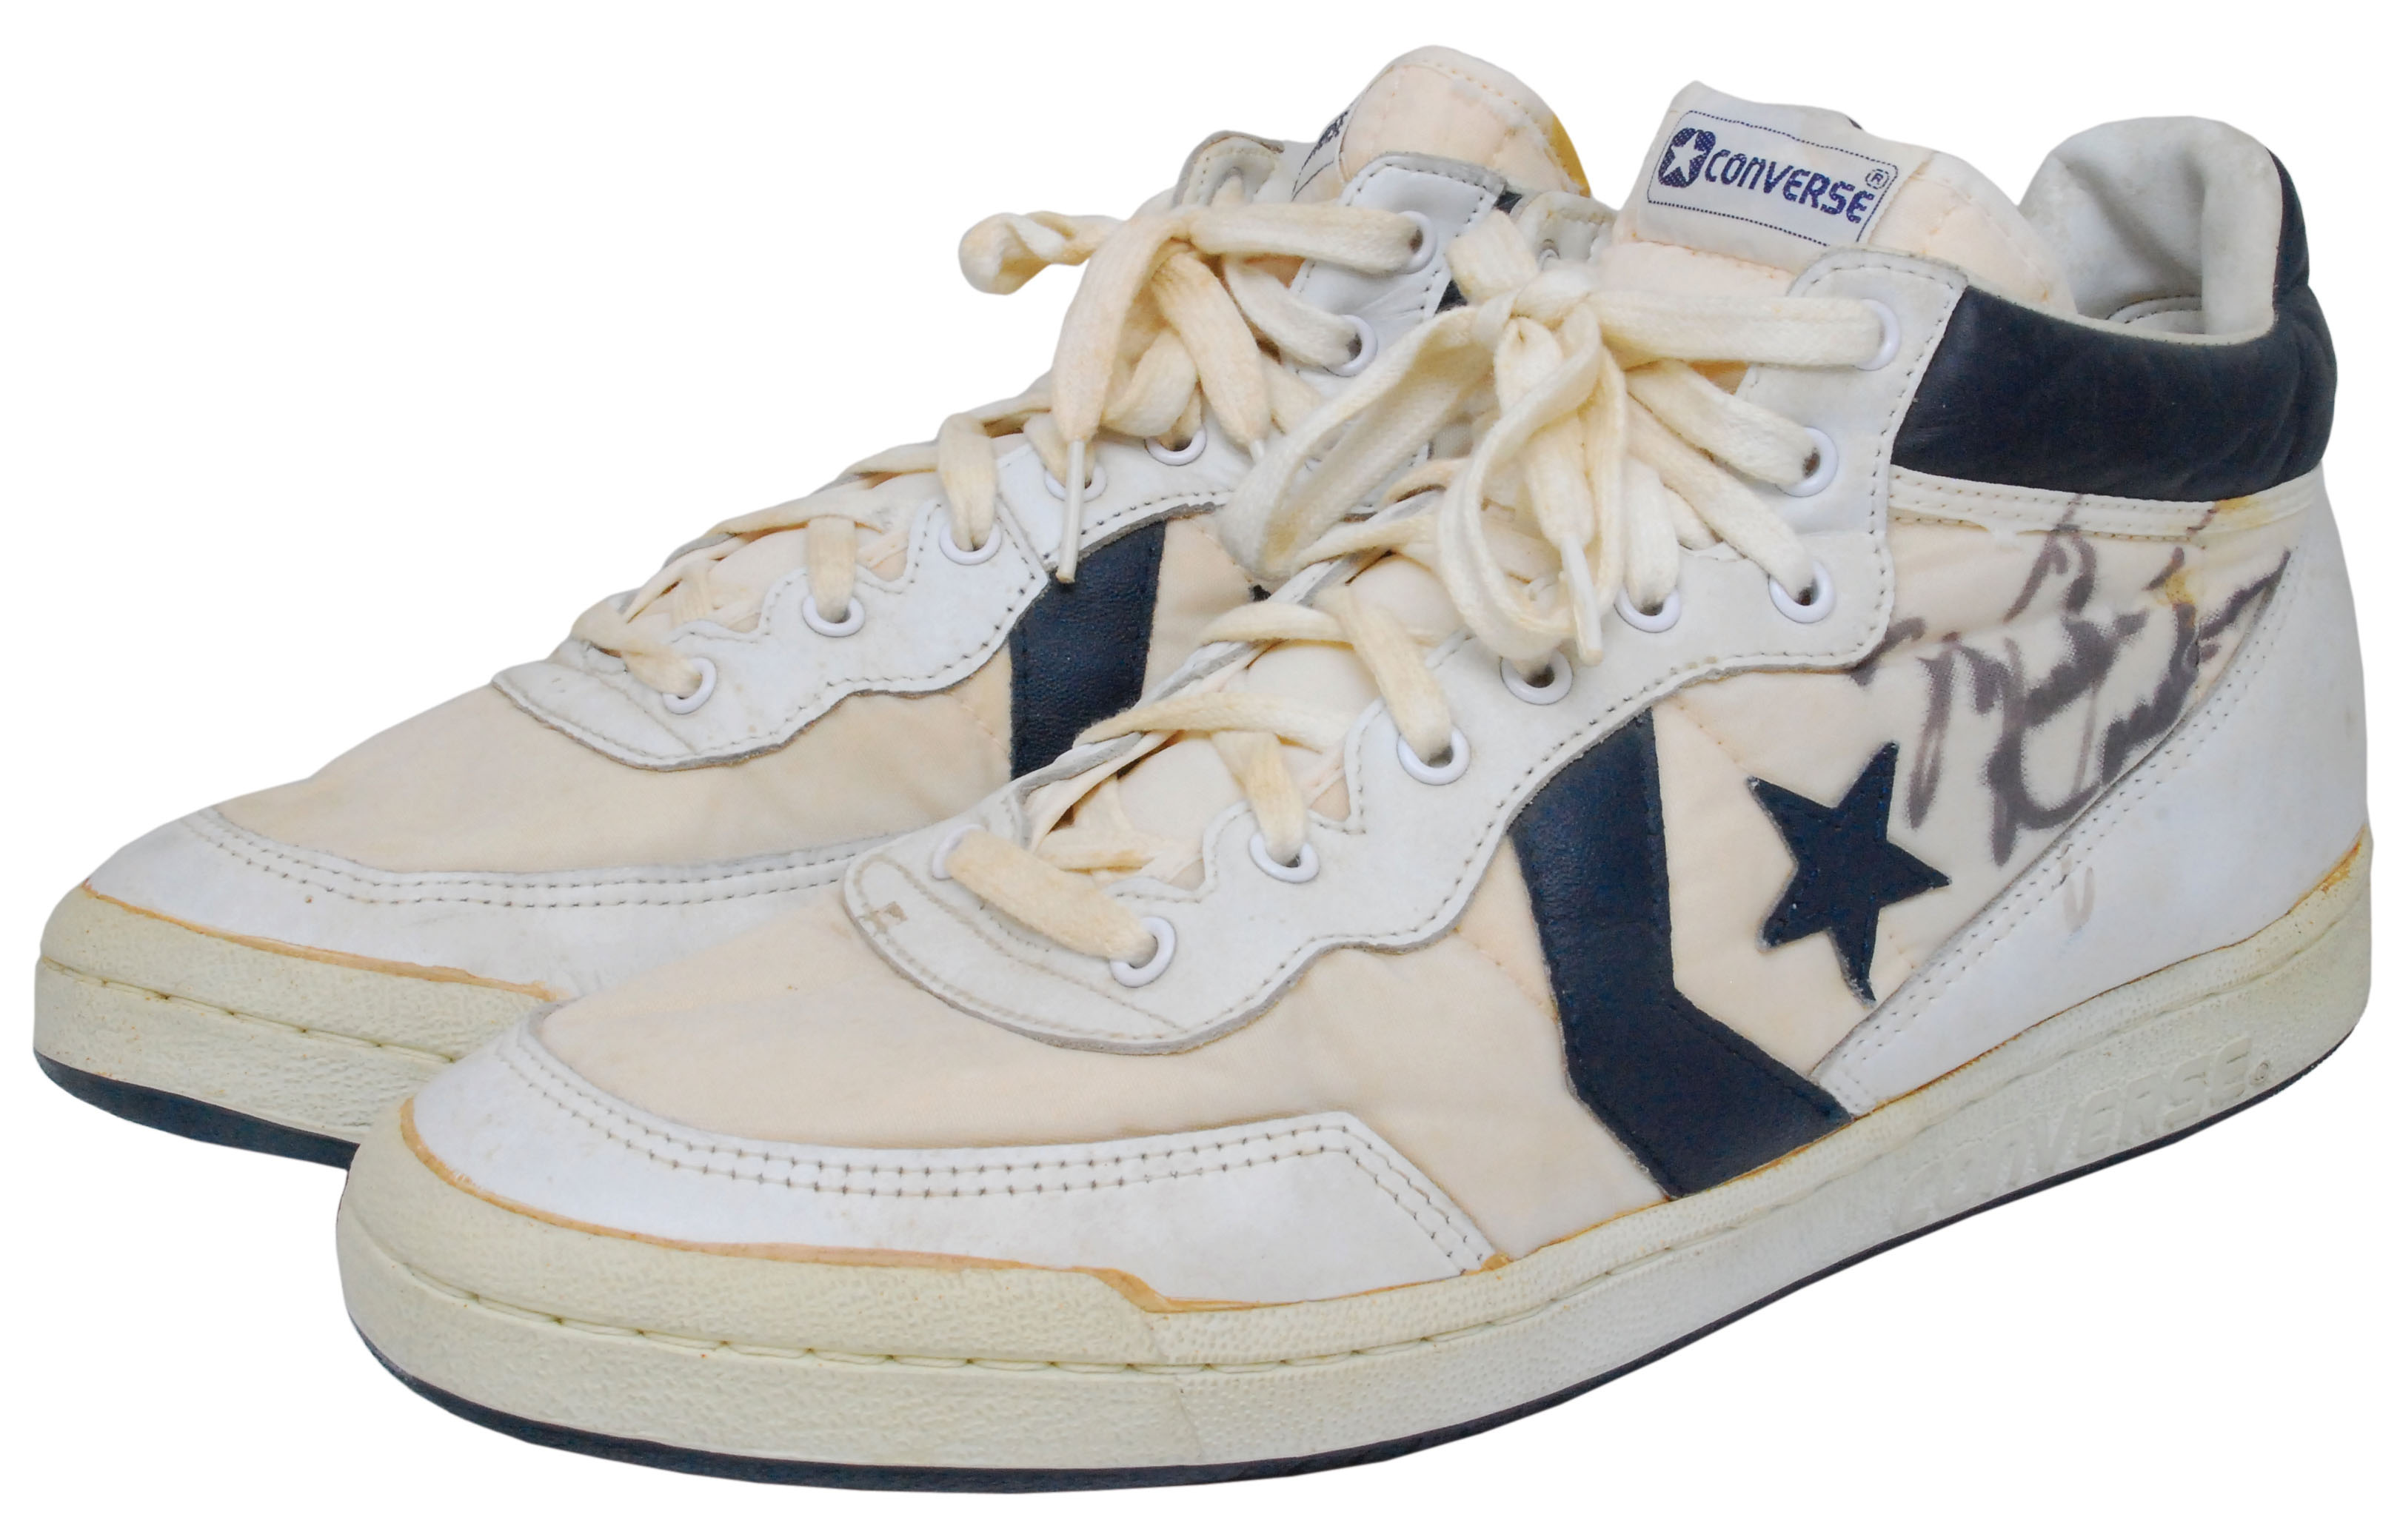 Michael Jordan's game-used, autographed Converse basketball shoes from the 1984  Olympics in Los